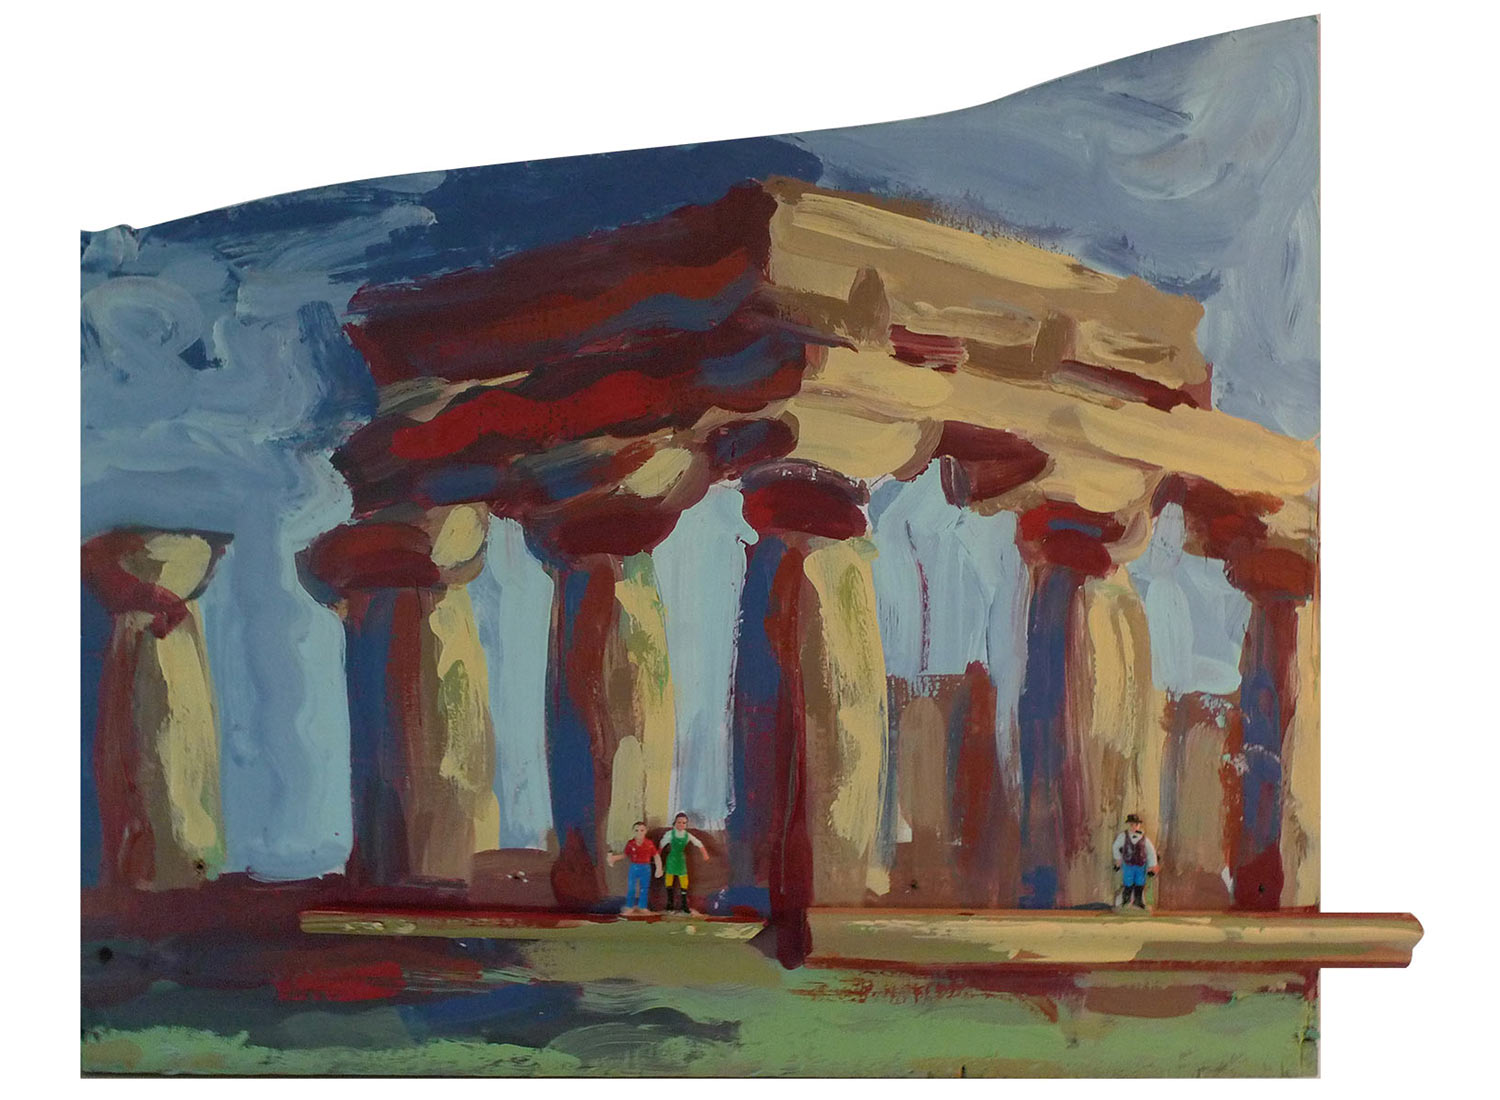 """Kansas Farm Mission @ the Temple of Poseidon in Hera, 2014.   Pittsburgh Paint on wood, 21 inches x 18"""""""